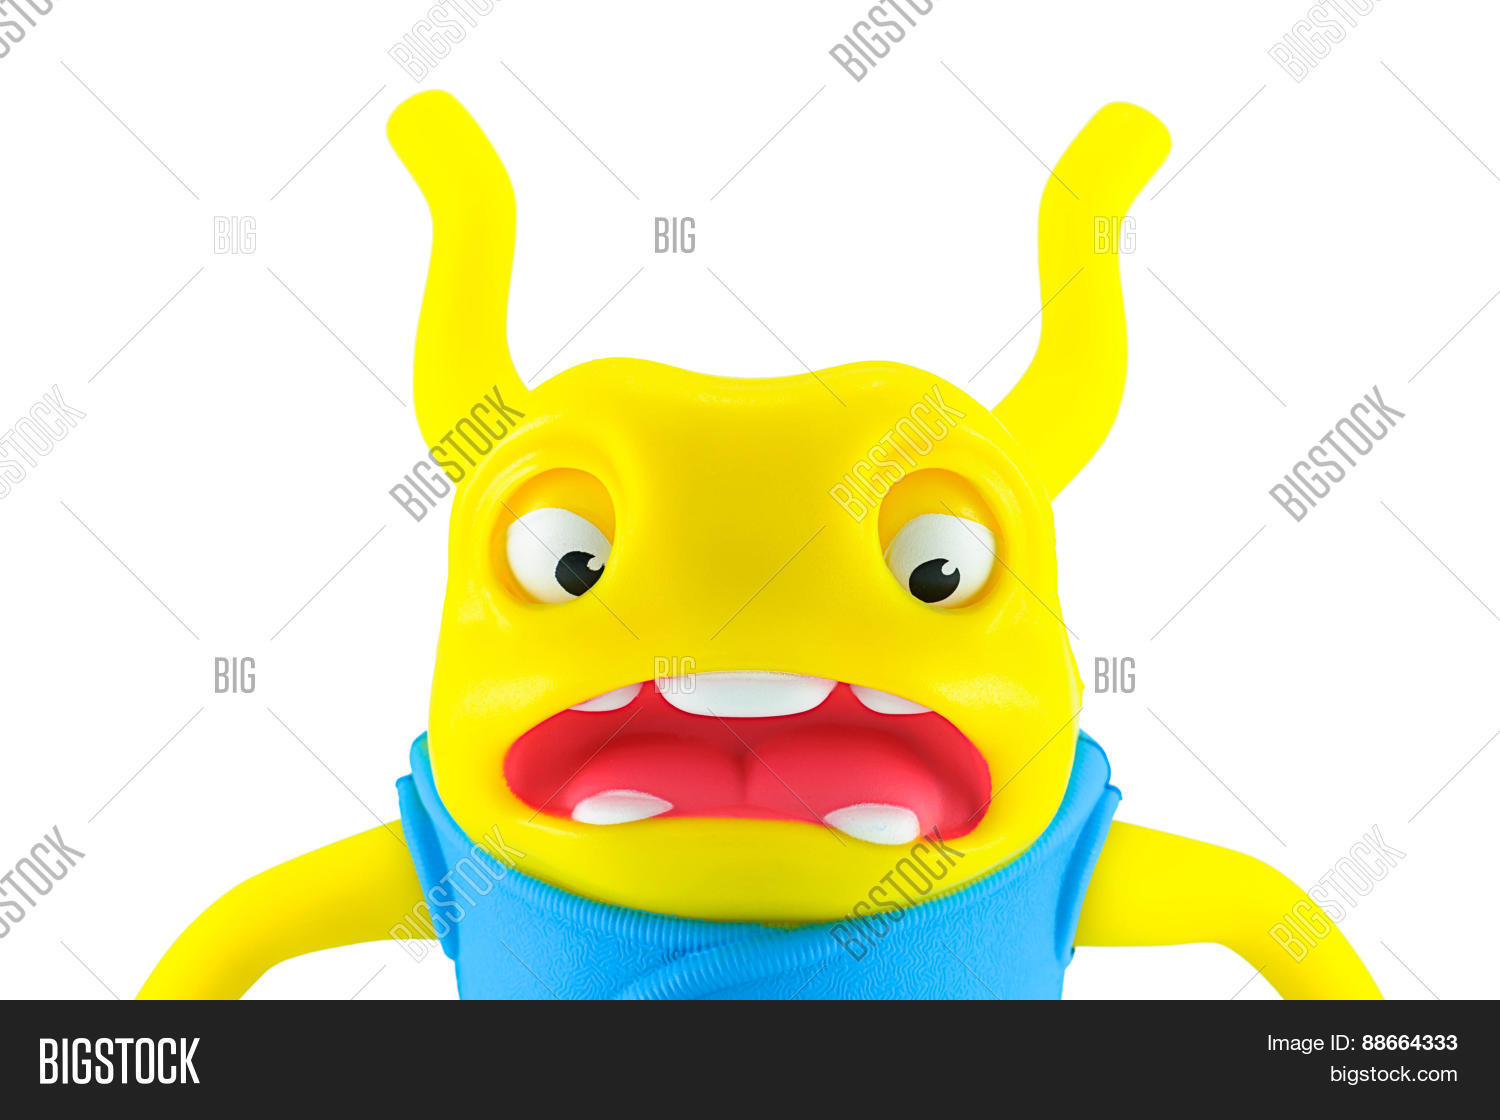 Serprised Oh Alien Yellow Color Toy Image Amp Photo